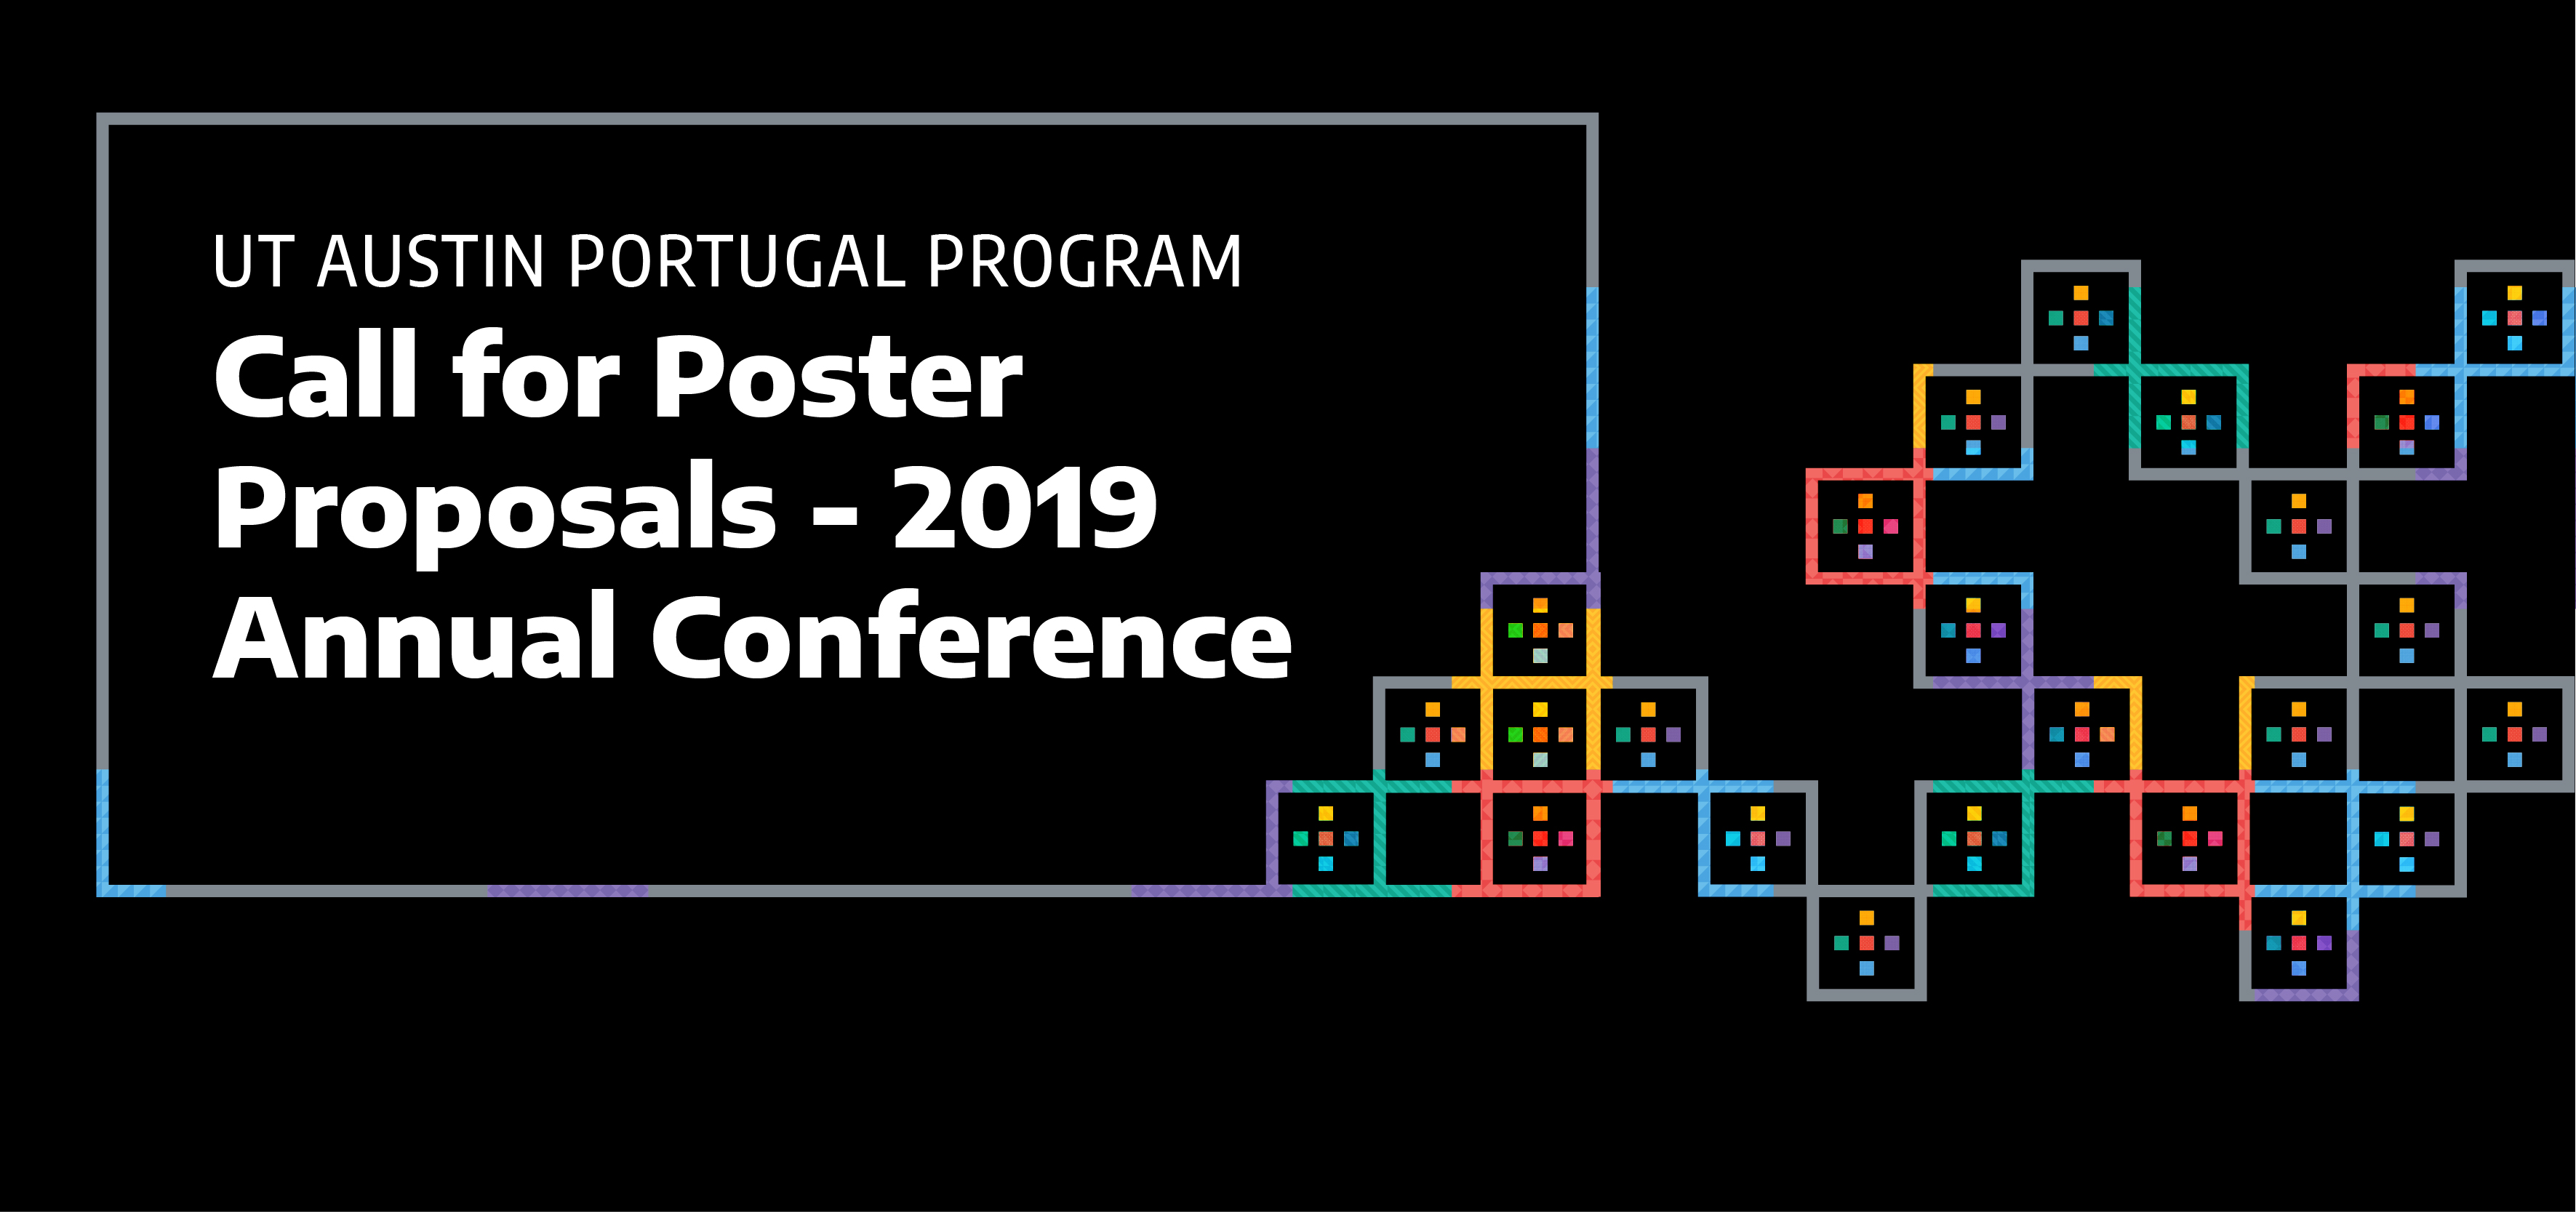 Call for Poster Proposals – 2019 Annual Conference - UT Austin Portugal